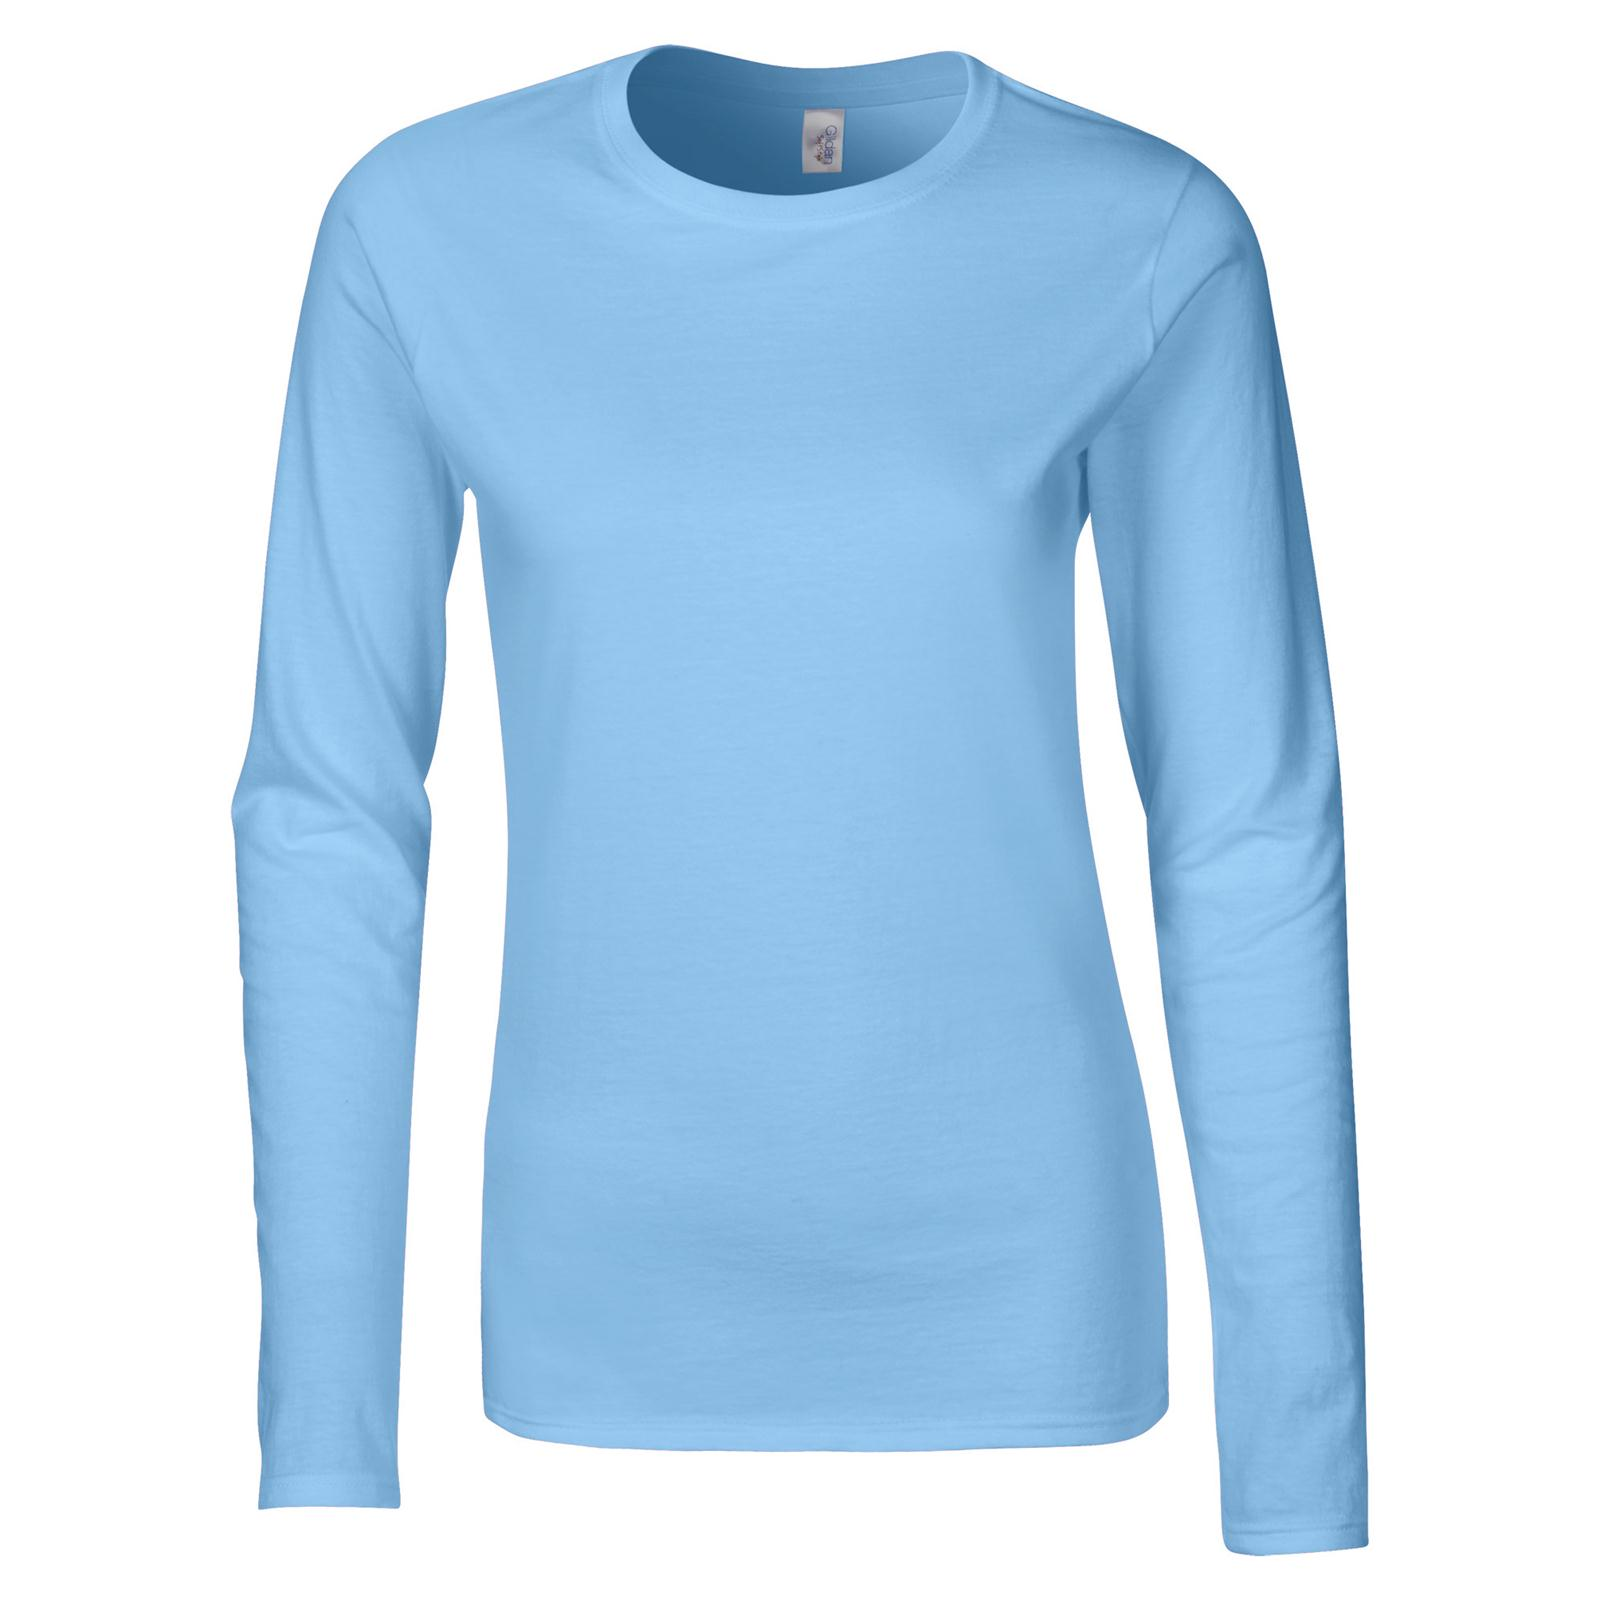 fe007784dd3 Gildan Womens Ladies Soft Style Cotton Long Sleeve T Shirt in 7 ...